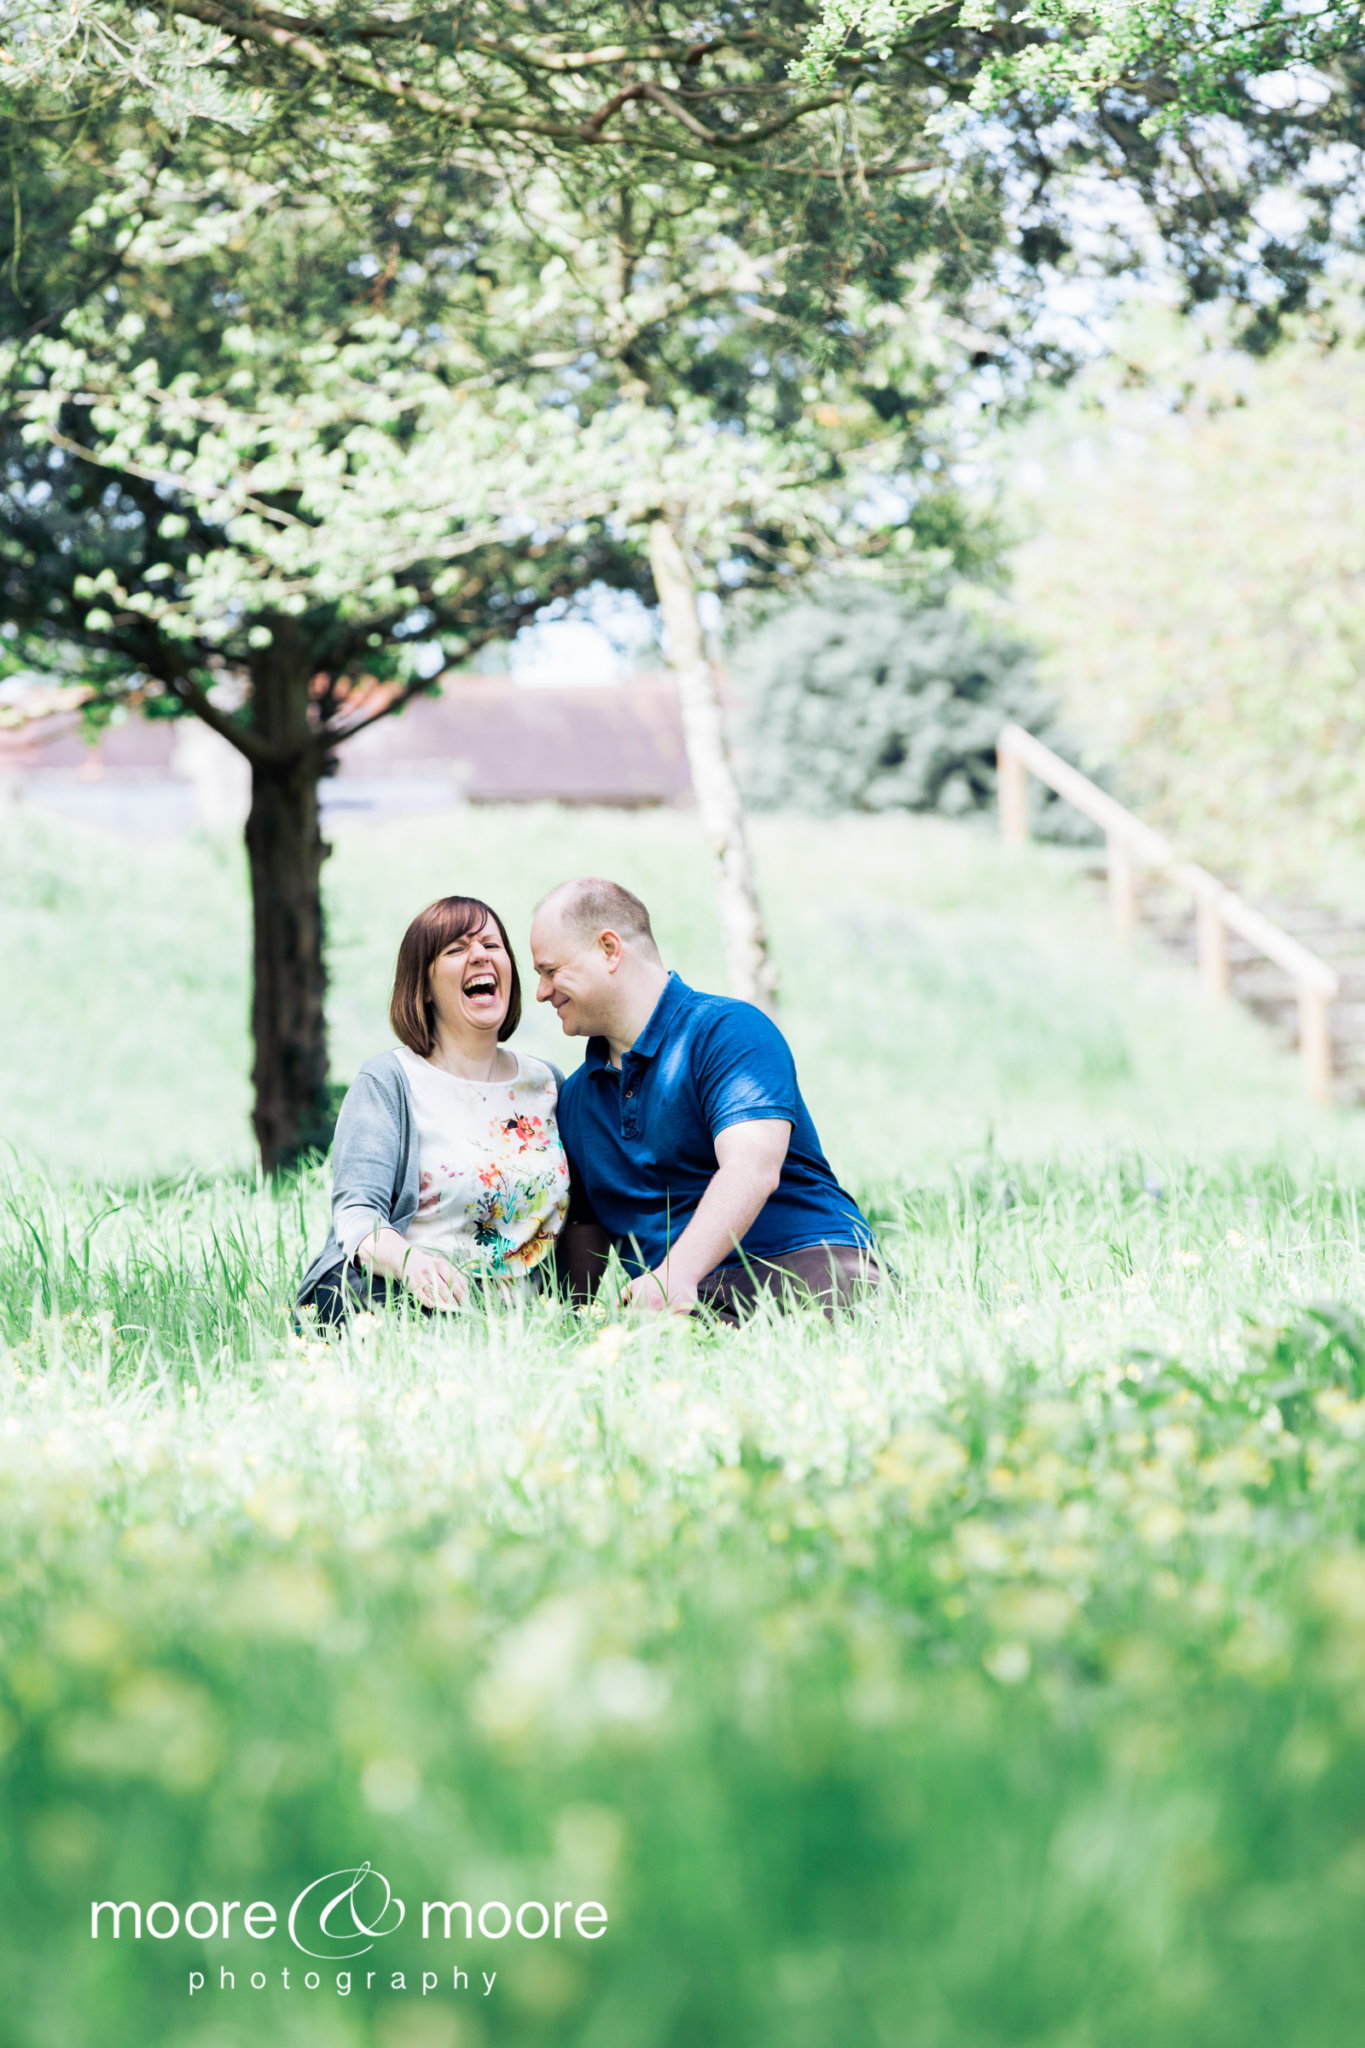 wedding photographers Hampshire, moore&moore capture romantic engagement photography